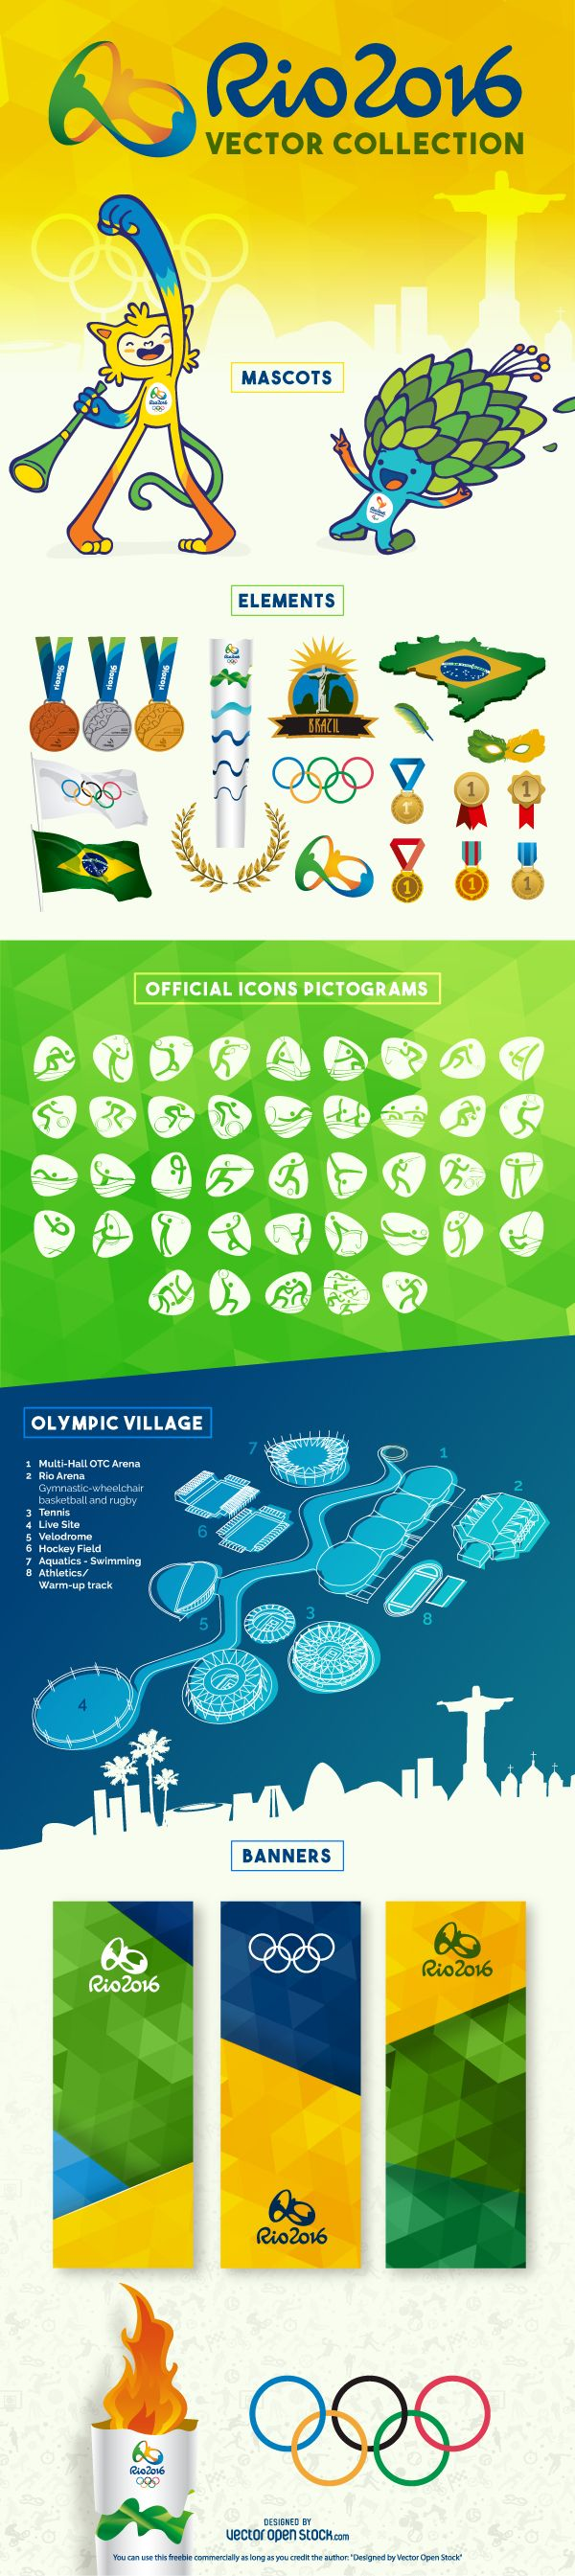 #Rio2016 #RioOlympics #OlympicGames #RiodeJaneiro #Brazil #sports #Olympics #icons #elements #resources #vector #graphics #images #resources #design #graphic #banners #medals #countries #pictograms #torch #flags #olympicrings #rings #continents #mascots #olympicvillage